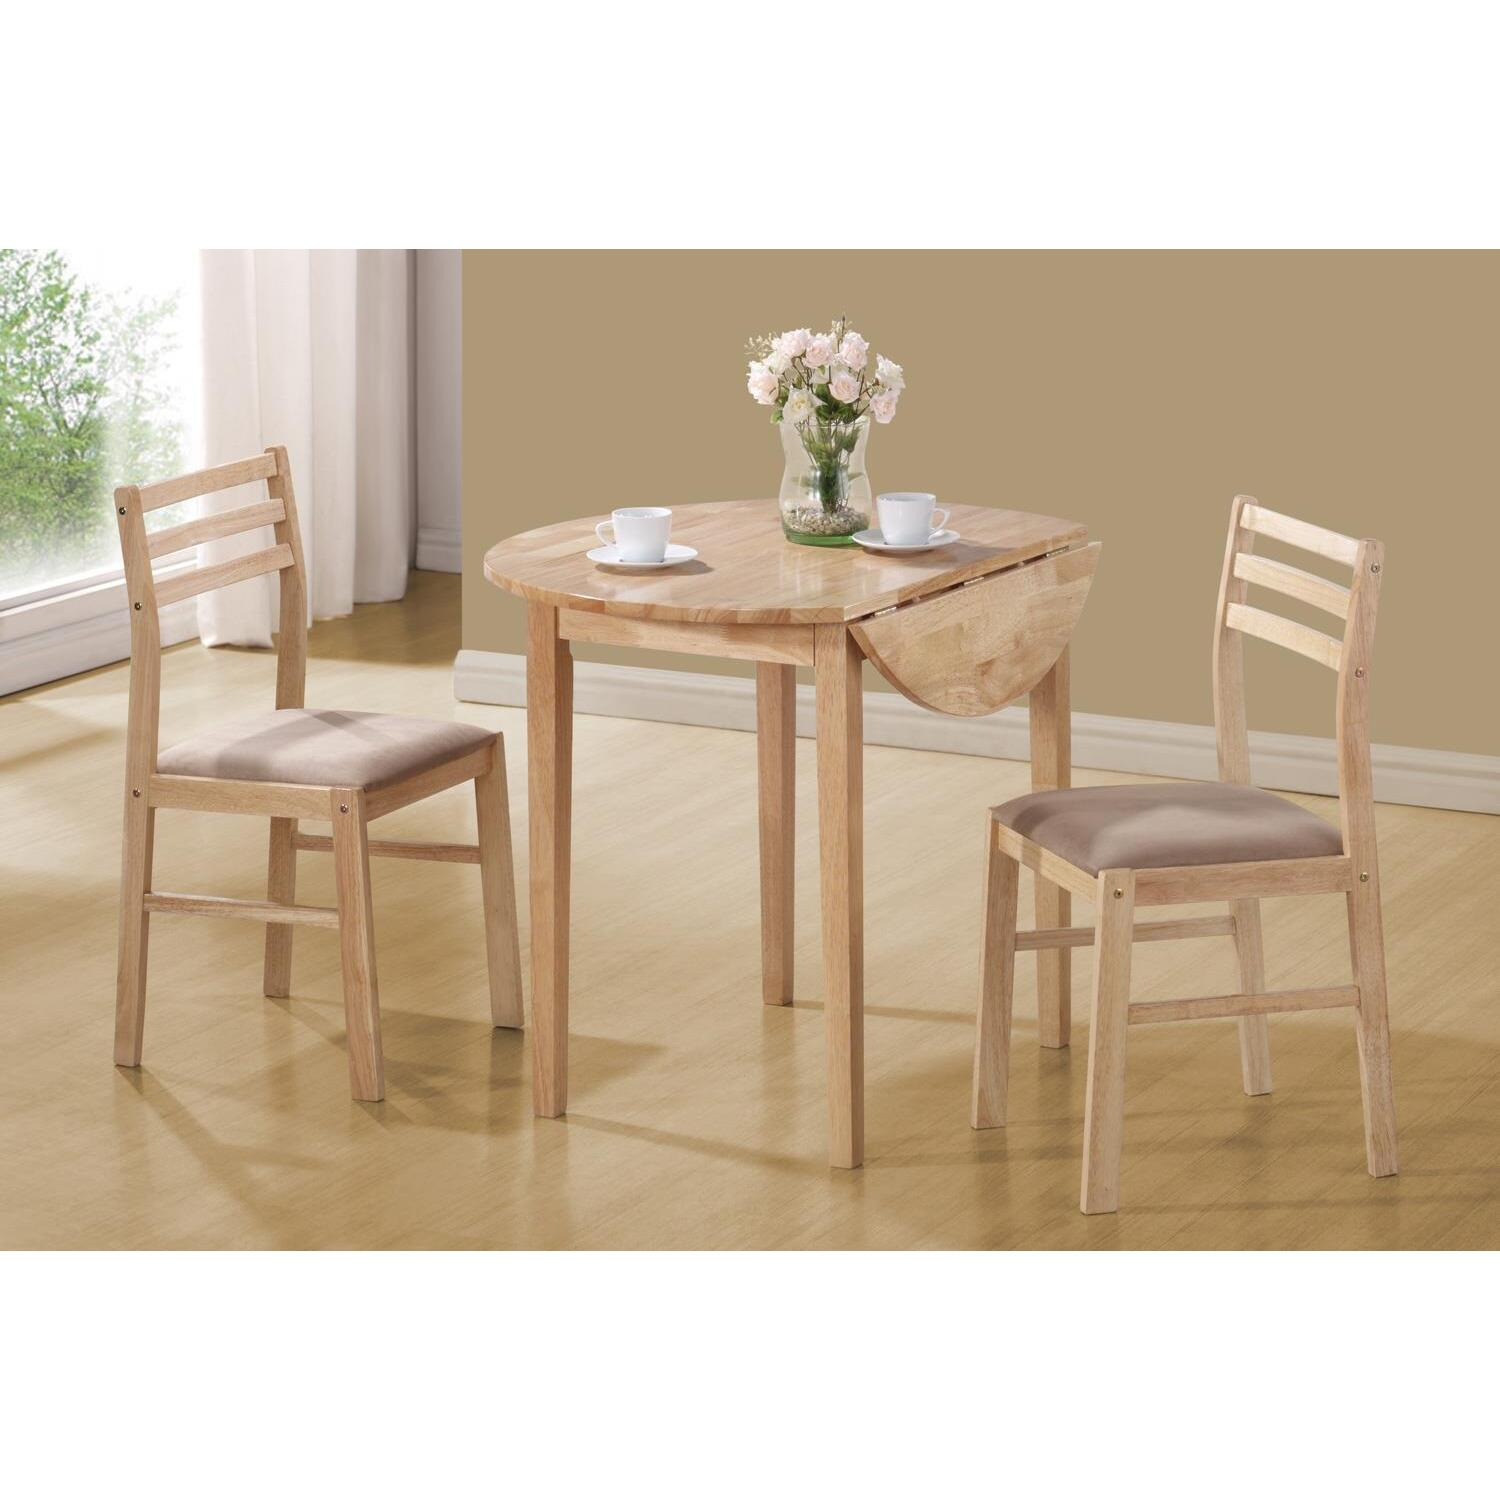 3 piece dining set ojcommerce for Kitchen dinette sets